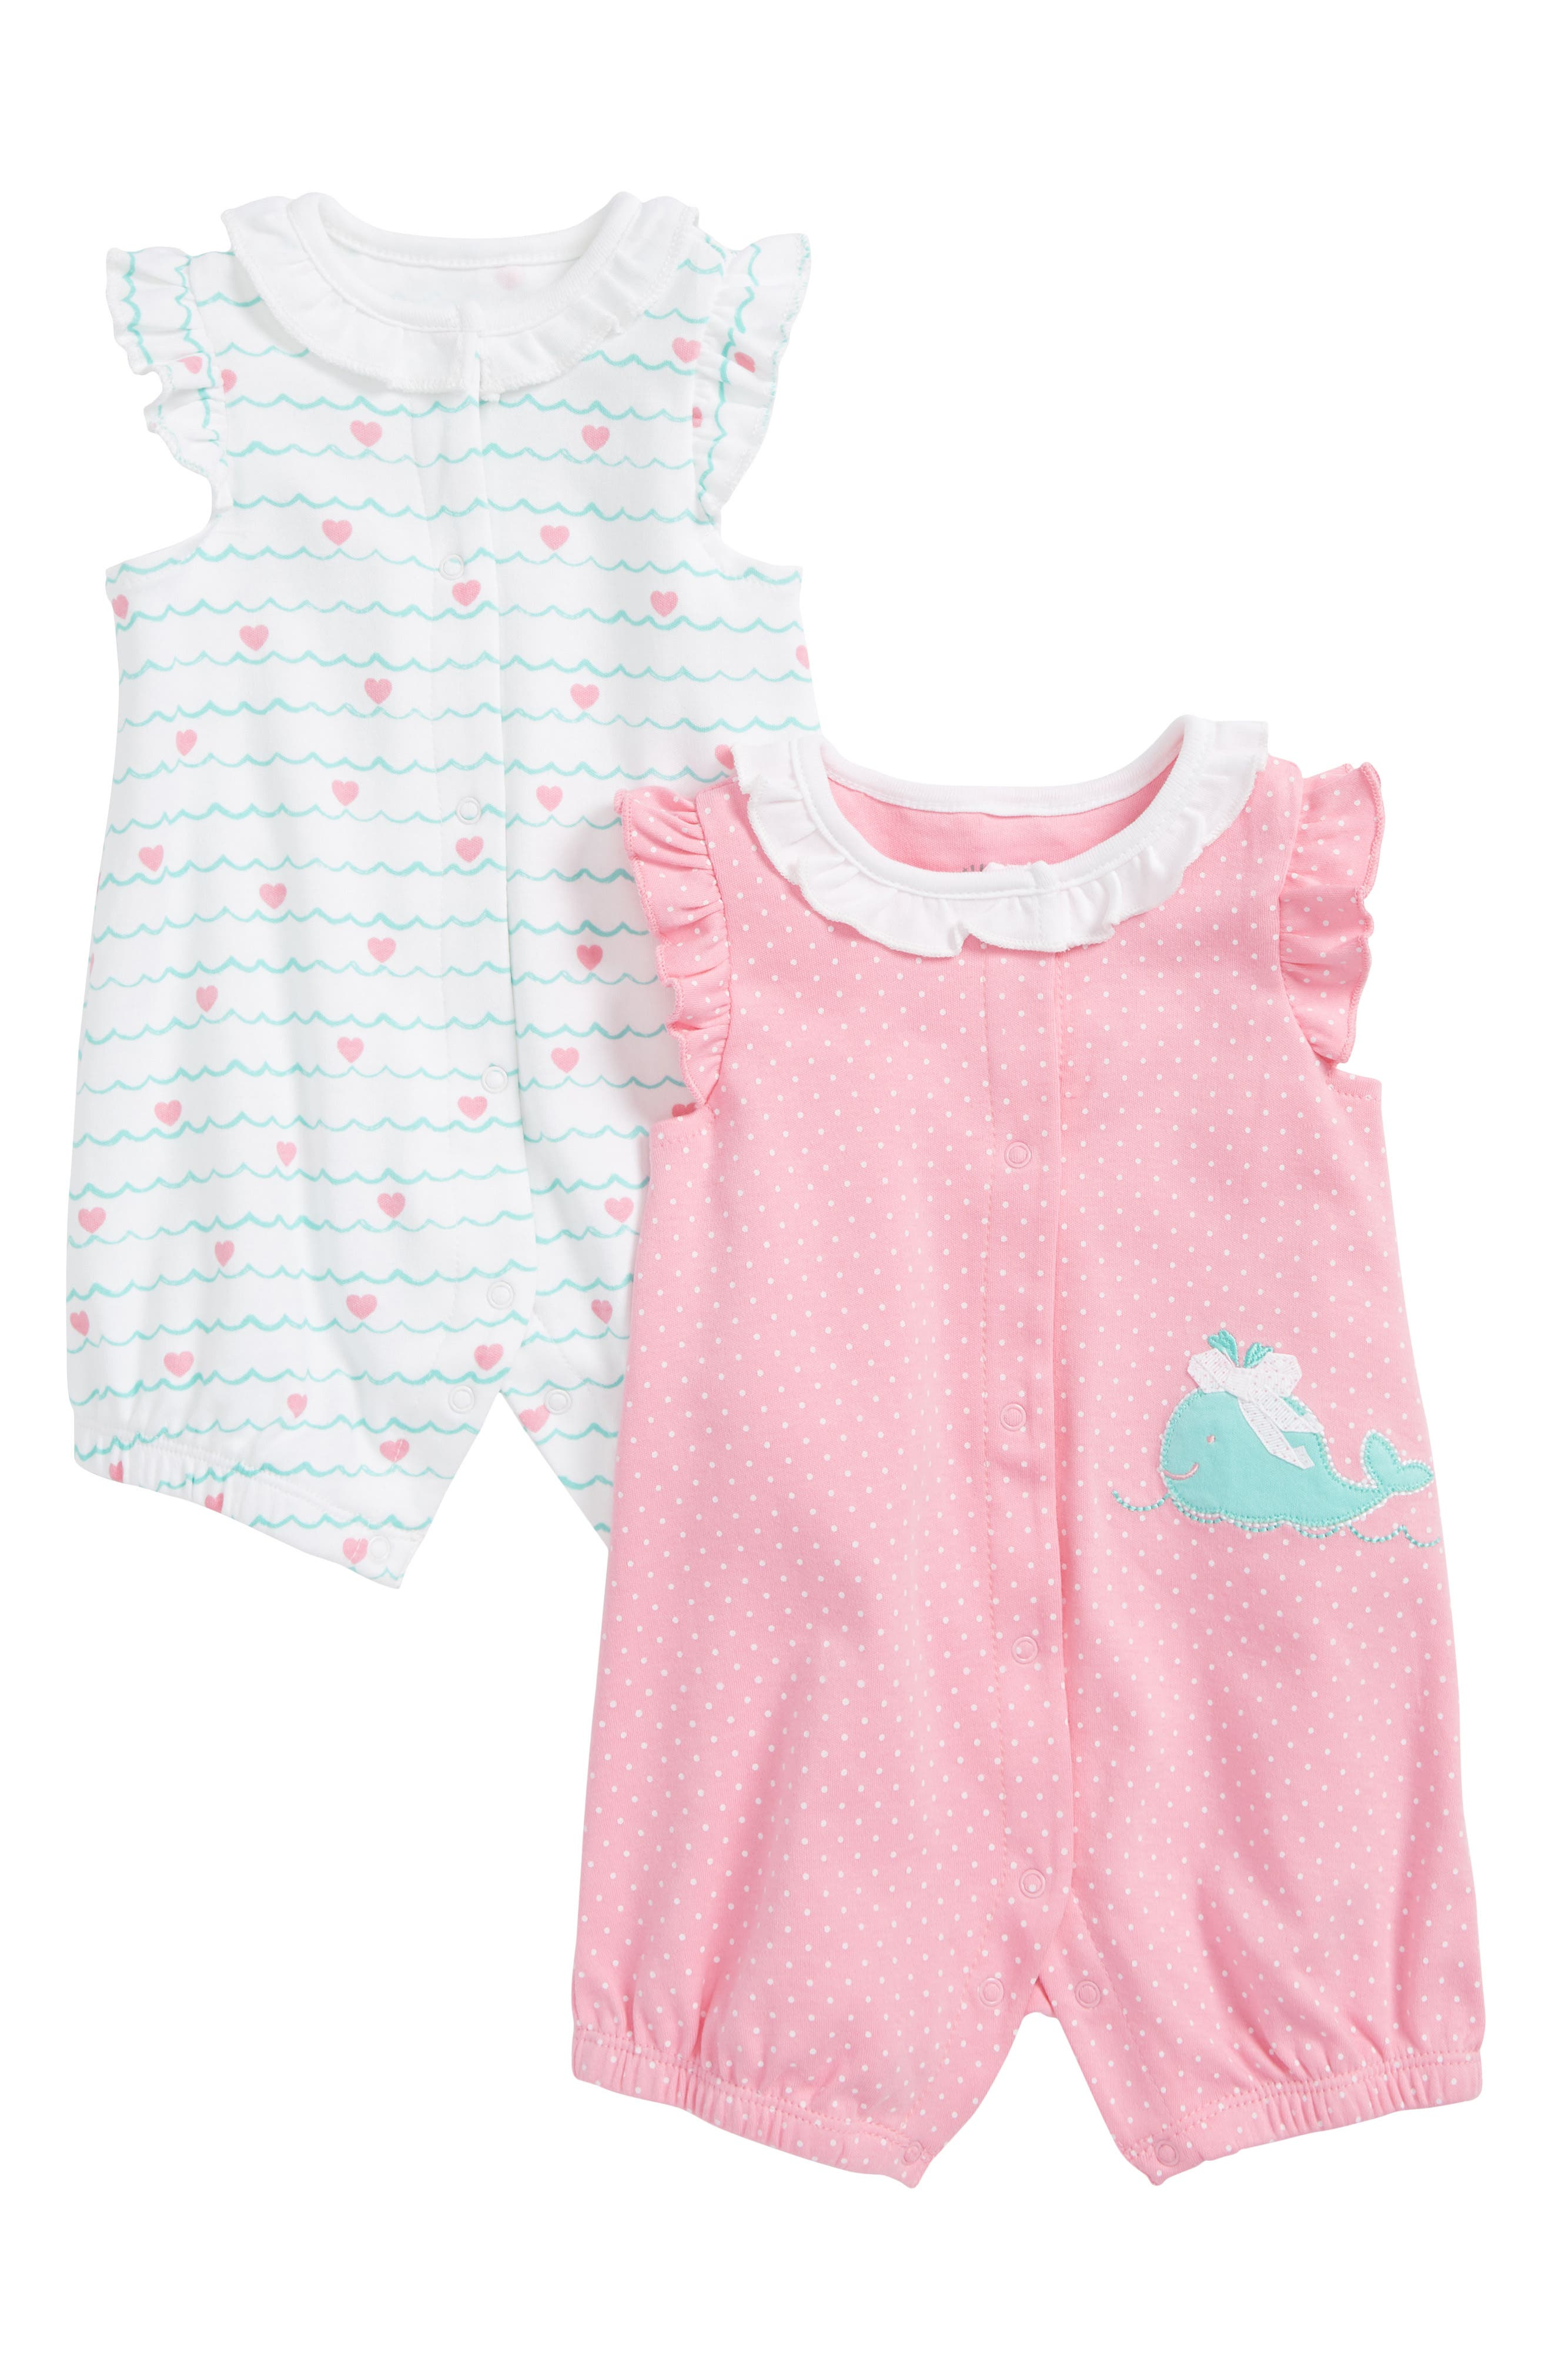 Whale 2-Pack Rompers,                             Main thumbnail 1, color,                             Pink Multi